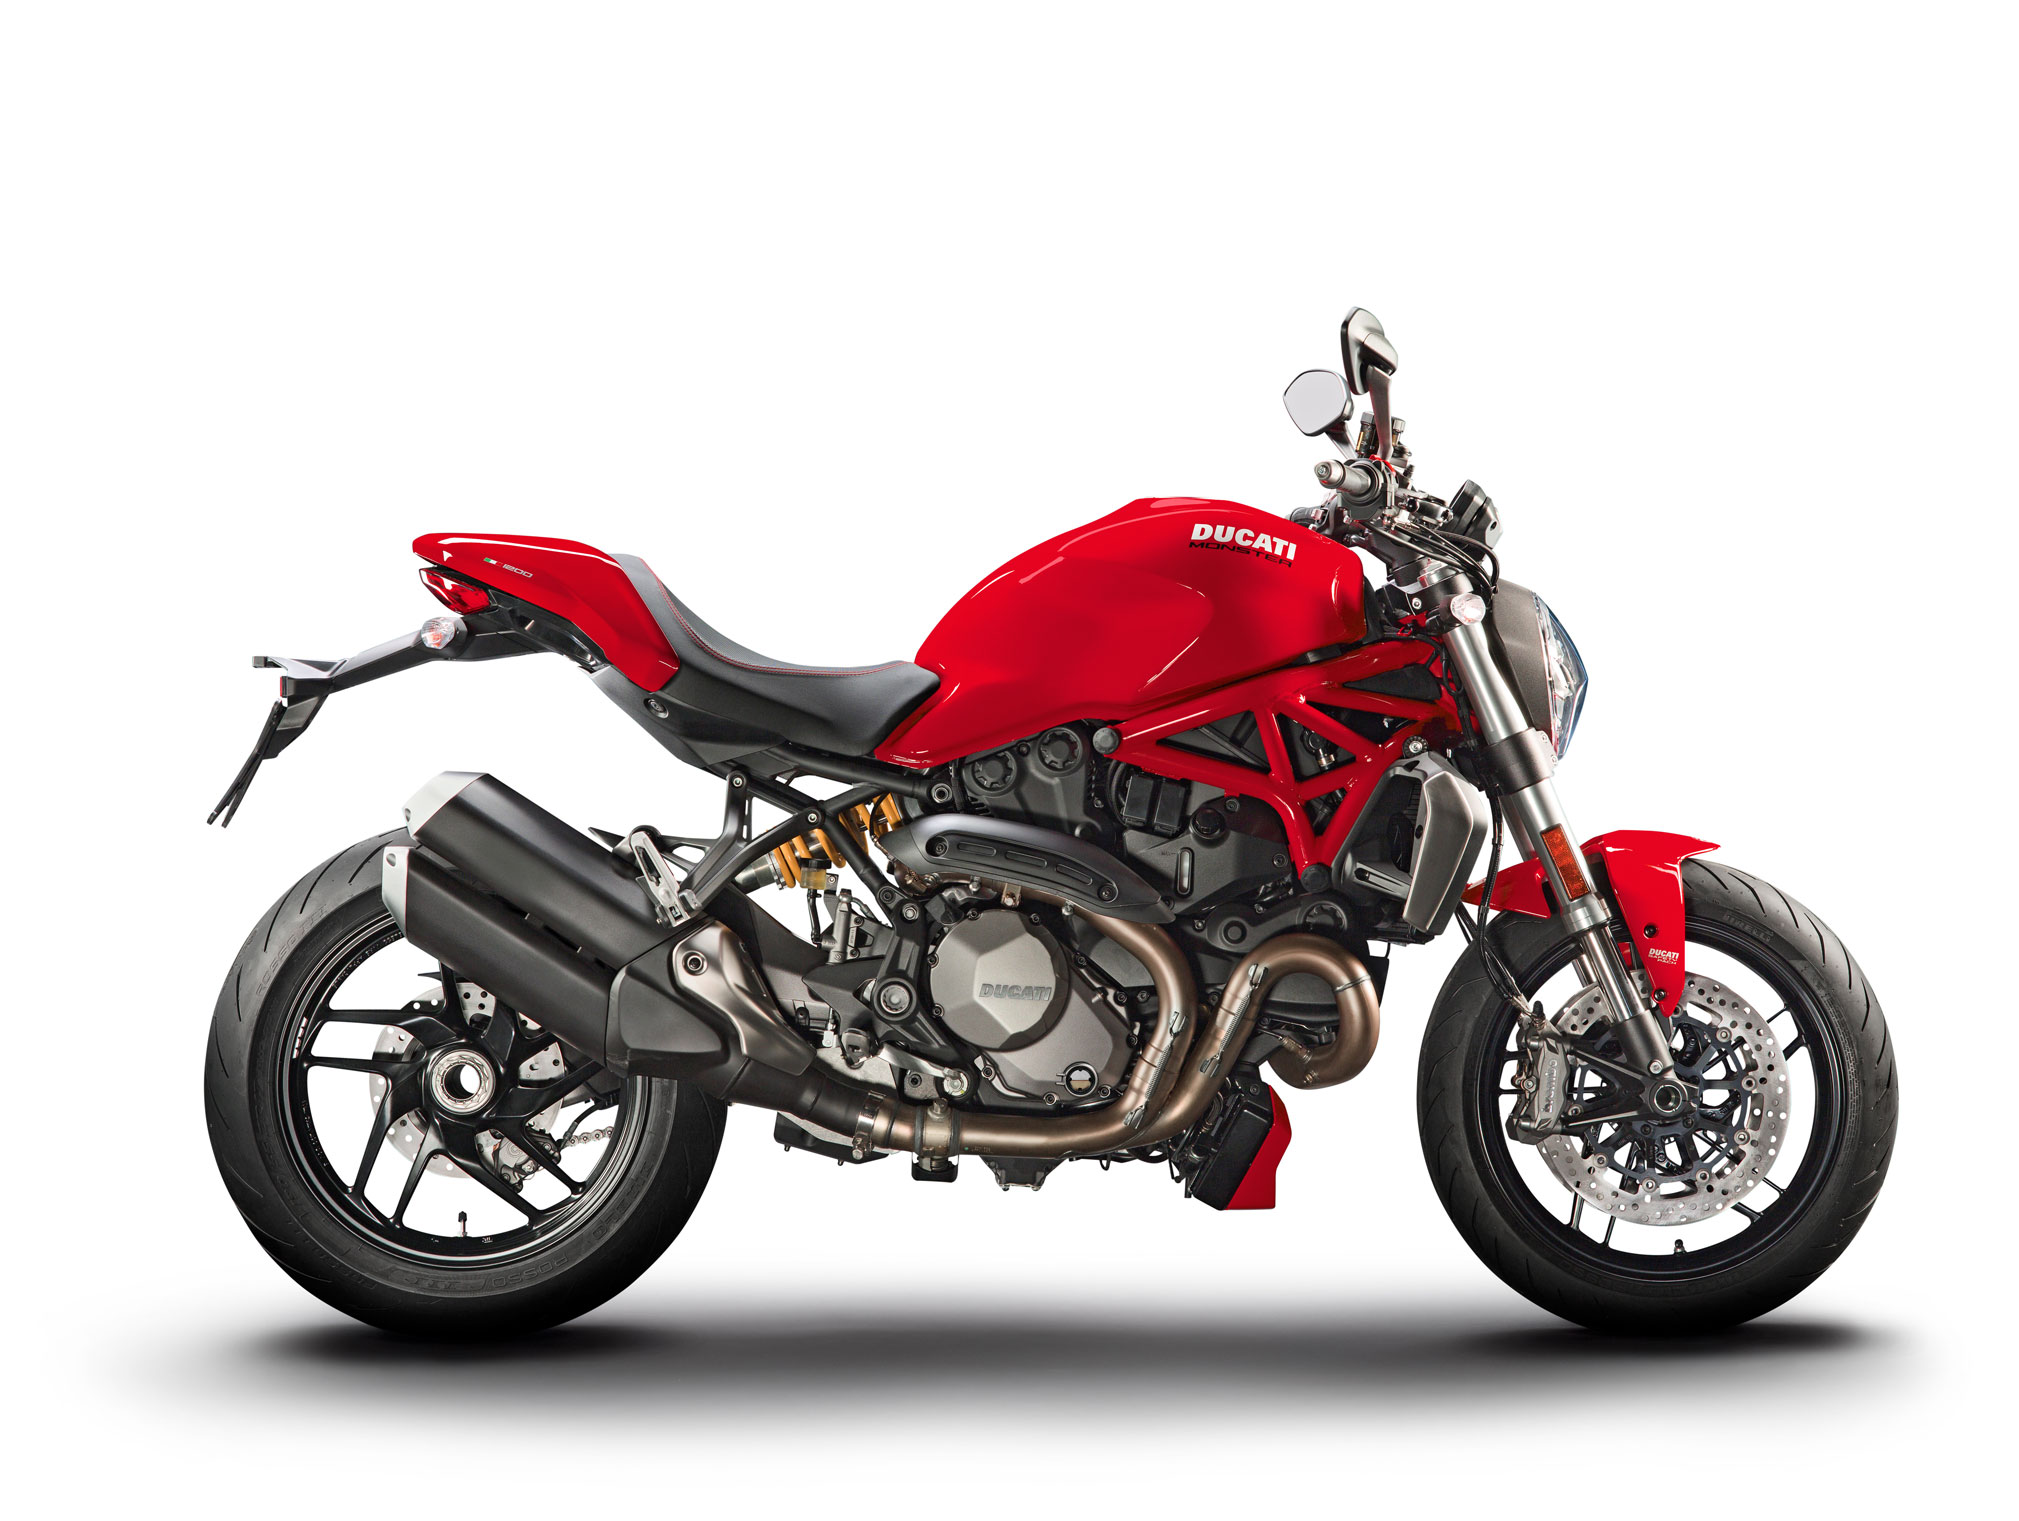 2019 ducati monster 1200 guide totalmotorcycle. Black Bedroom Furniture Sets. Home Design Ideas